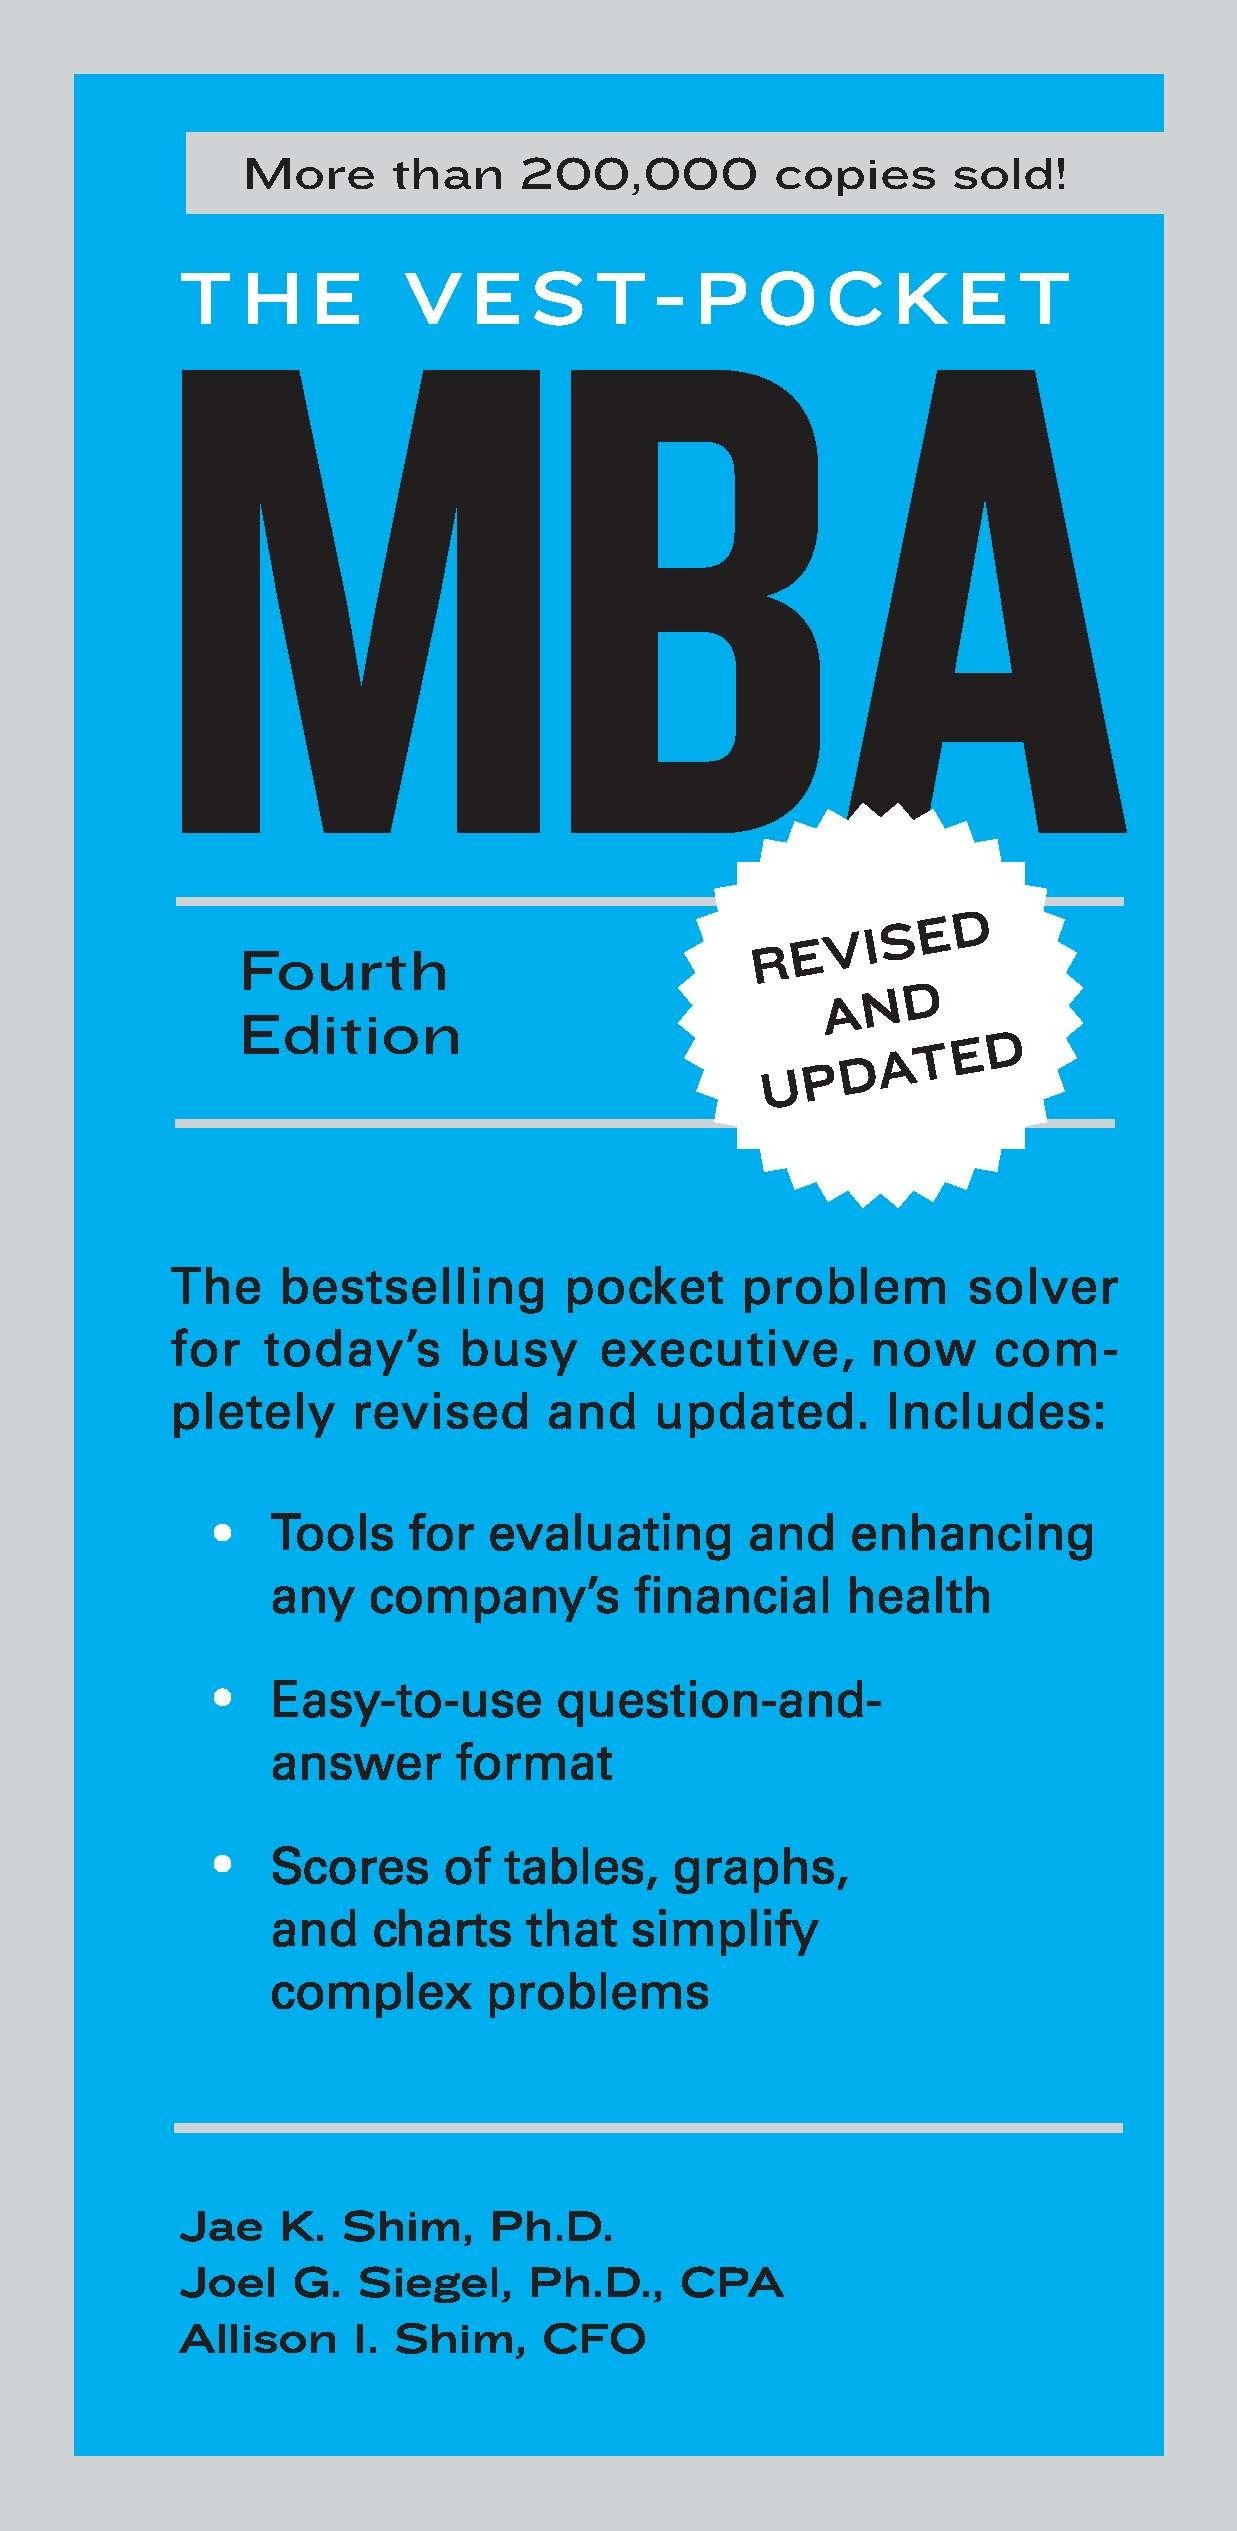 The vest pocket mba fourth edition jae k shim joel g siegel the vest pocket mba fourth edition jae k shim joel g siegel allison i shim 9781591844334 amazon books fandeluxe